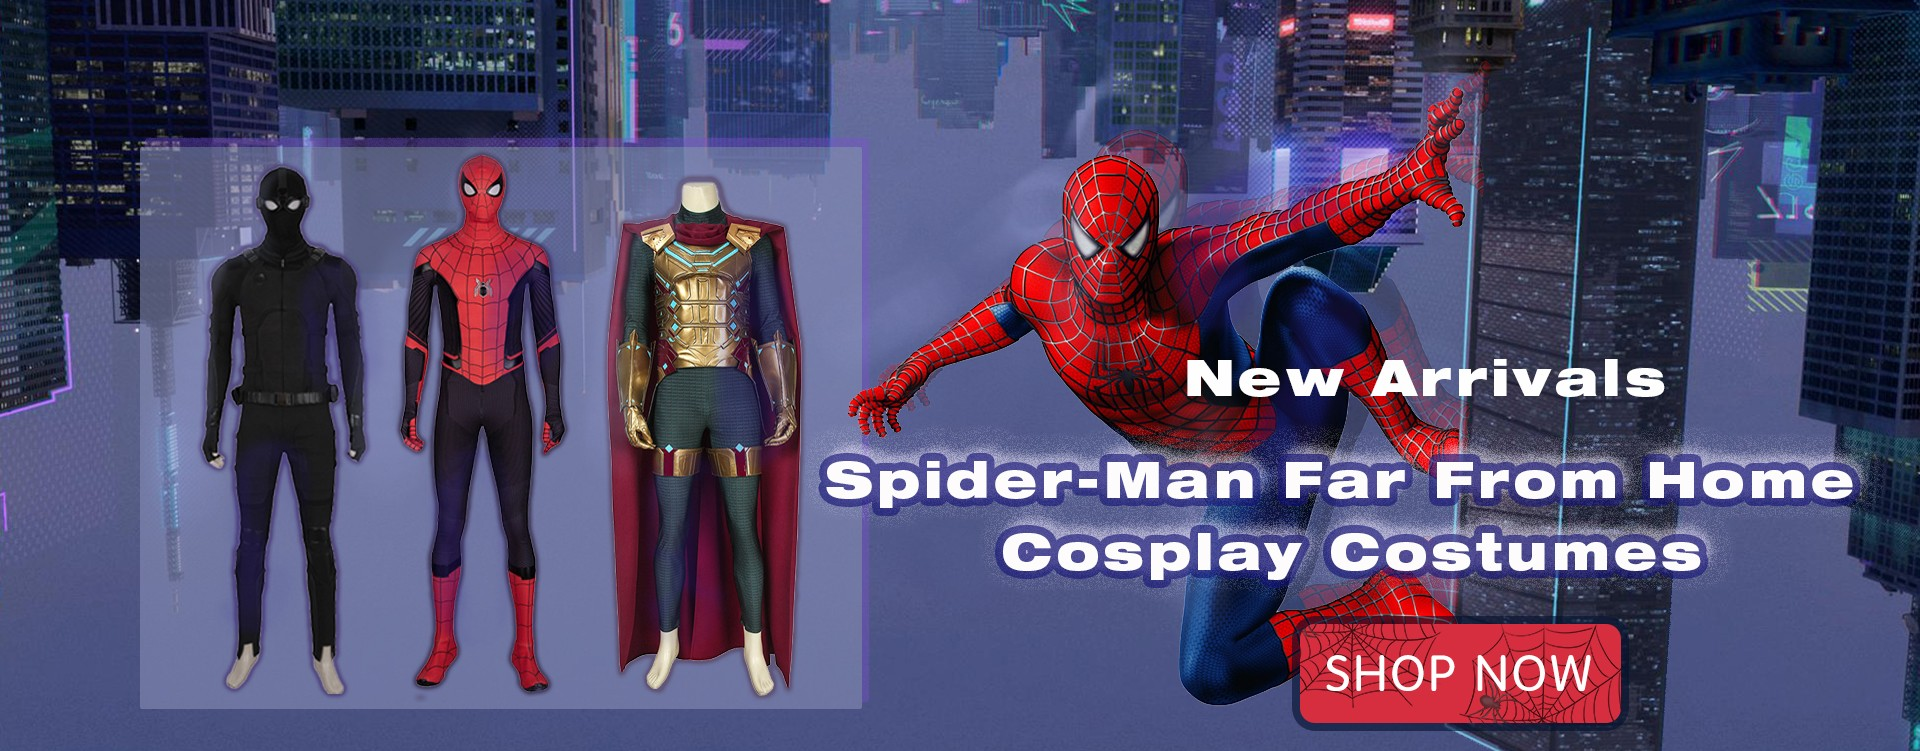 New Arrivals Spider-Man Far From Home Cosplay Costumes